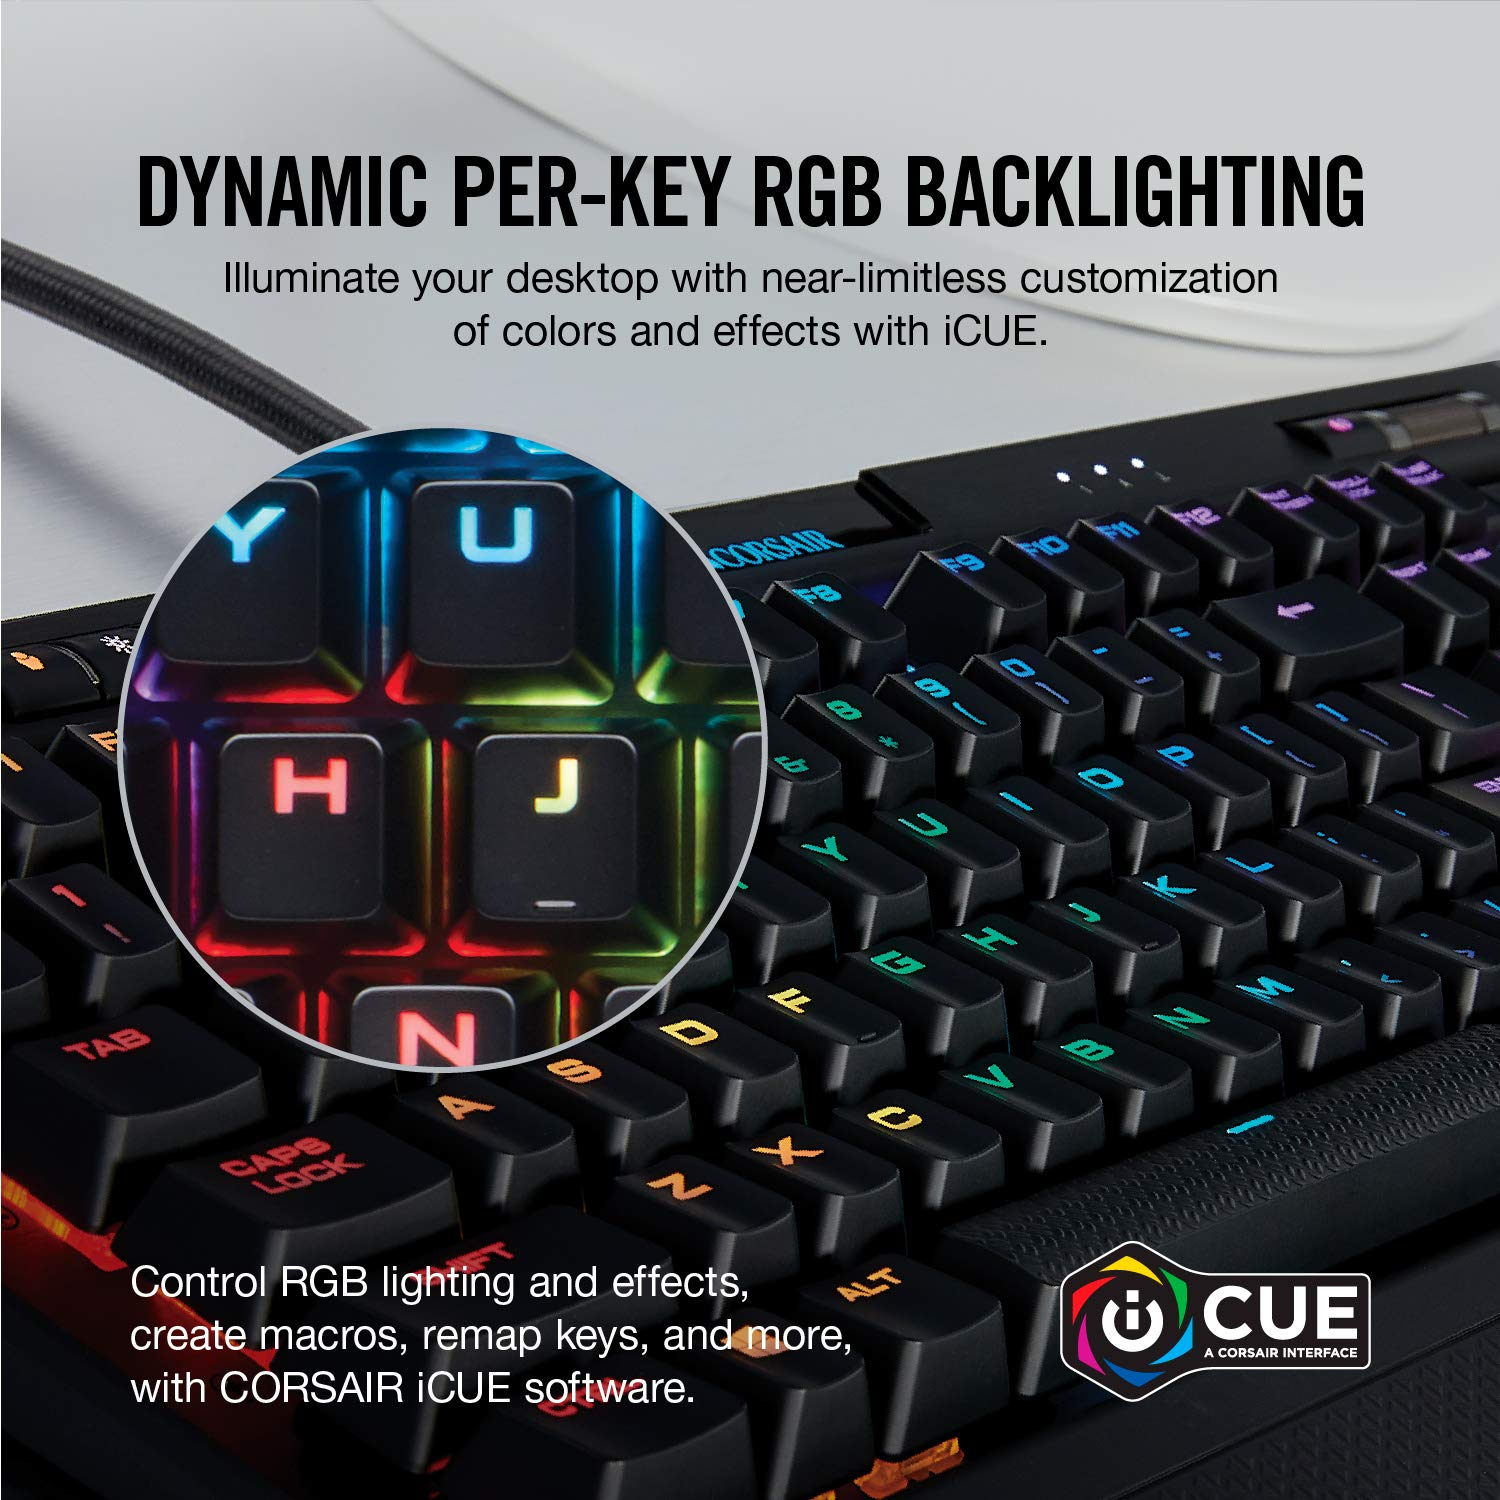 Cherry MX Blue Tactile /& Clicky Corsair K70 RGB MK.2 Mechanical Gaming Keyboard USB Passthrough /& Media Controls RGB LED Backlit